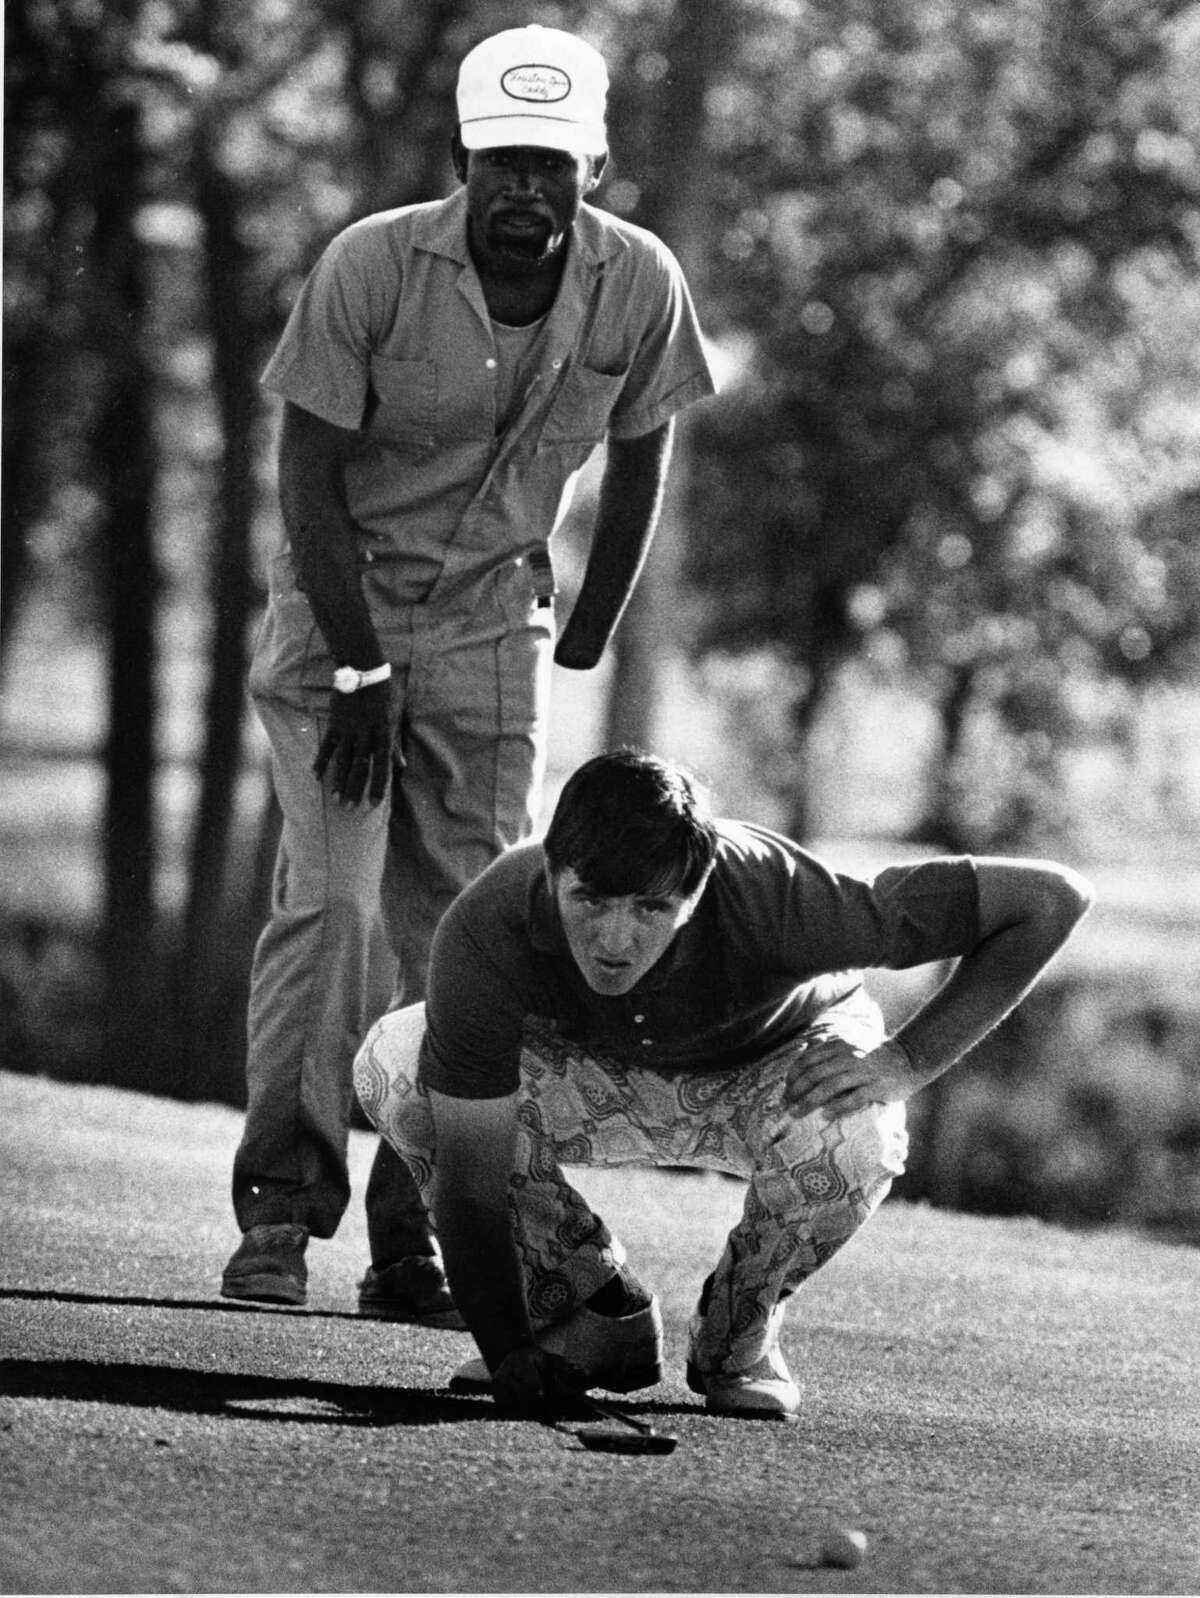 05/03/1973 - Houston Open Golf - Quail Valley Golf Club - Mike Hill lines up putt on the 18th green.